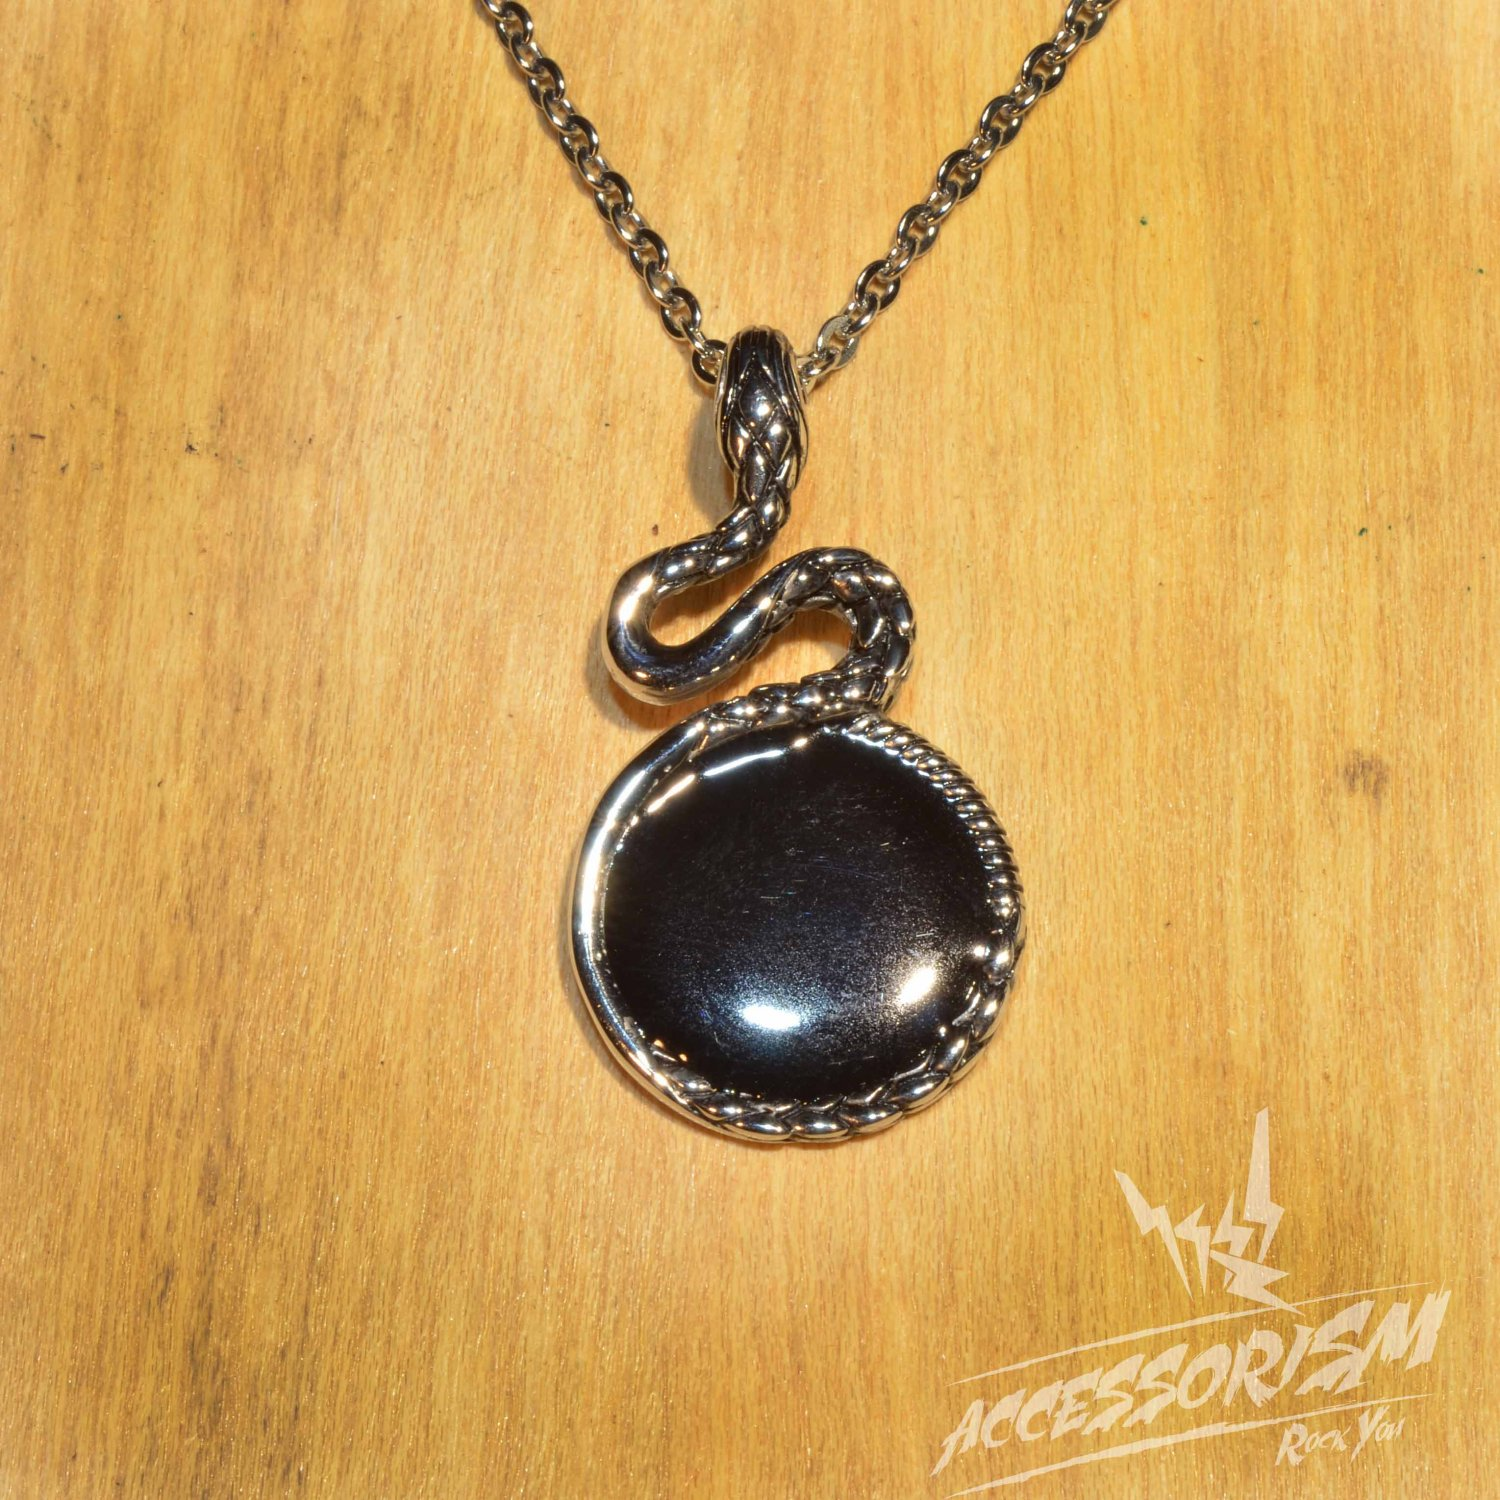 Free Shipping Steel Snake with Black Mirror Pendant Necklace (N659S)